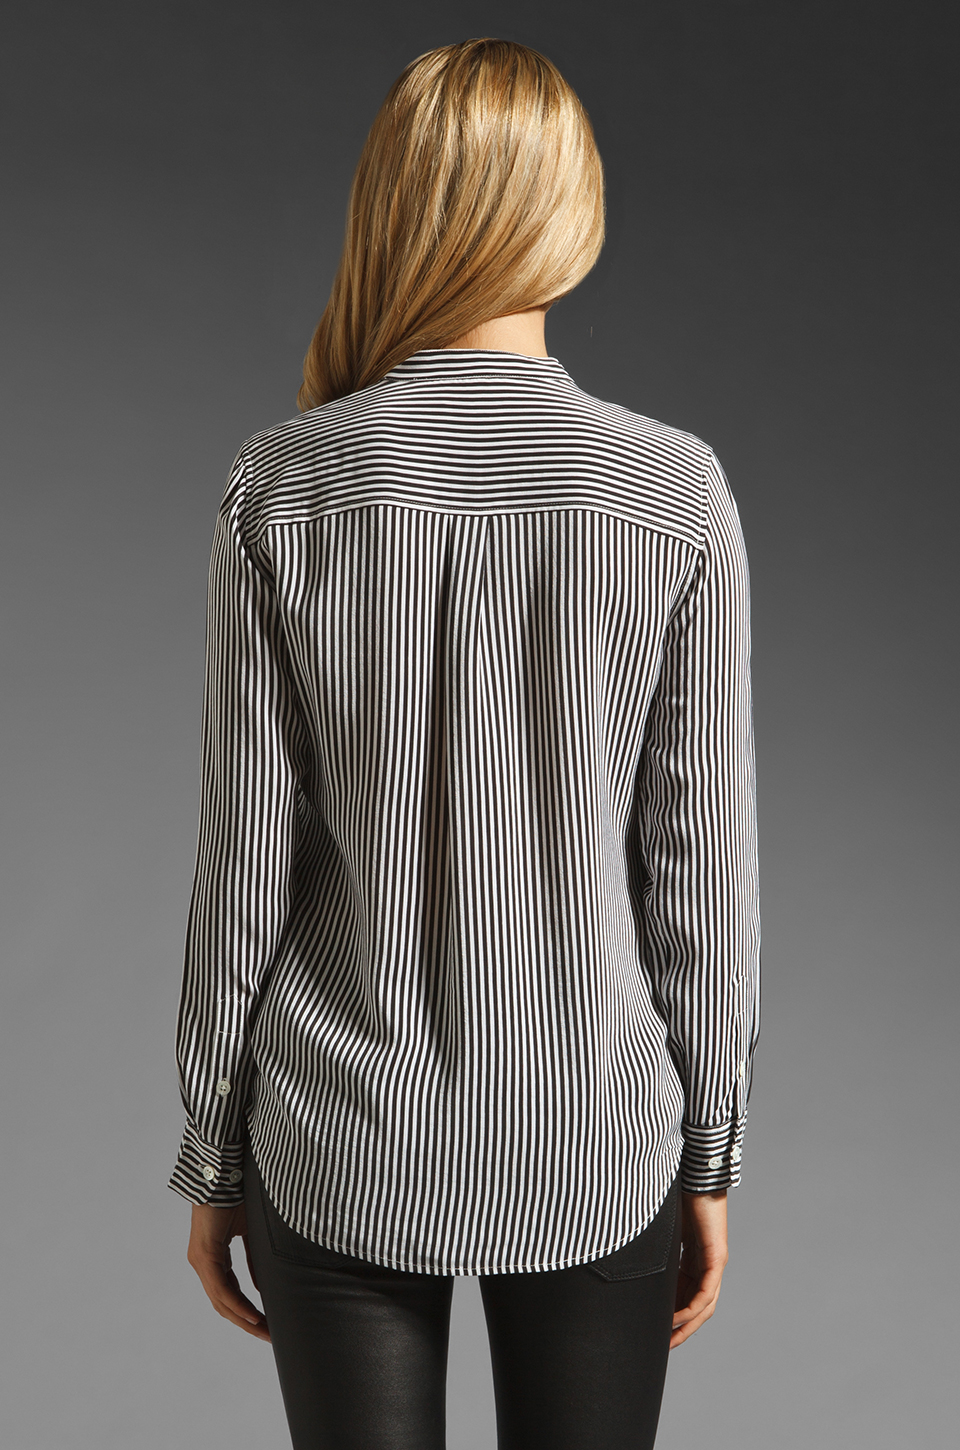 Equipment Collarless Slim Signature Daphne Stripe Blouse in Black/White